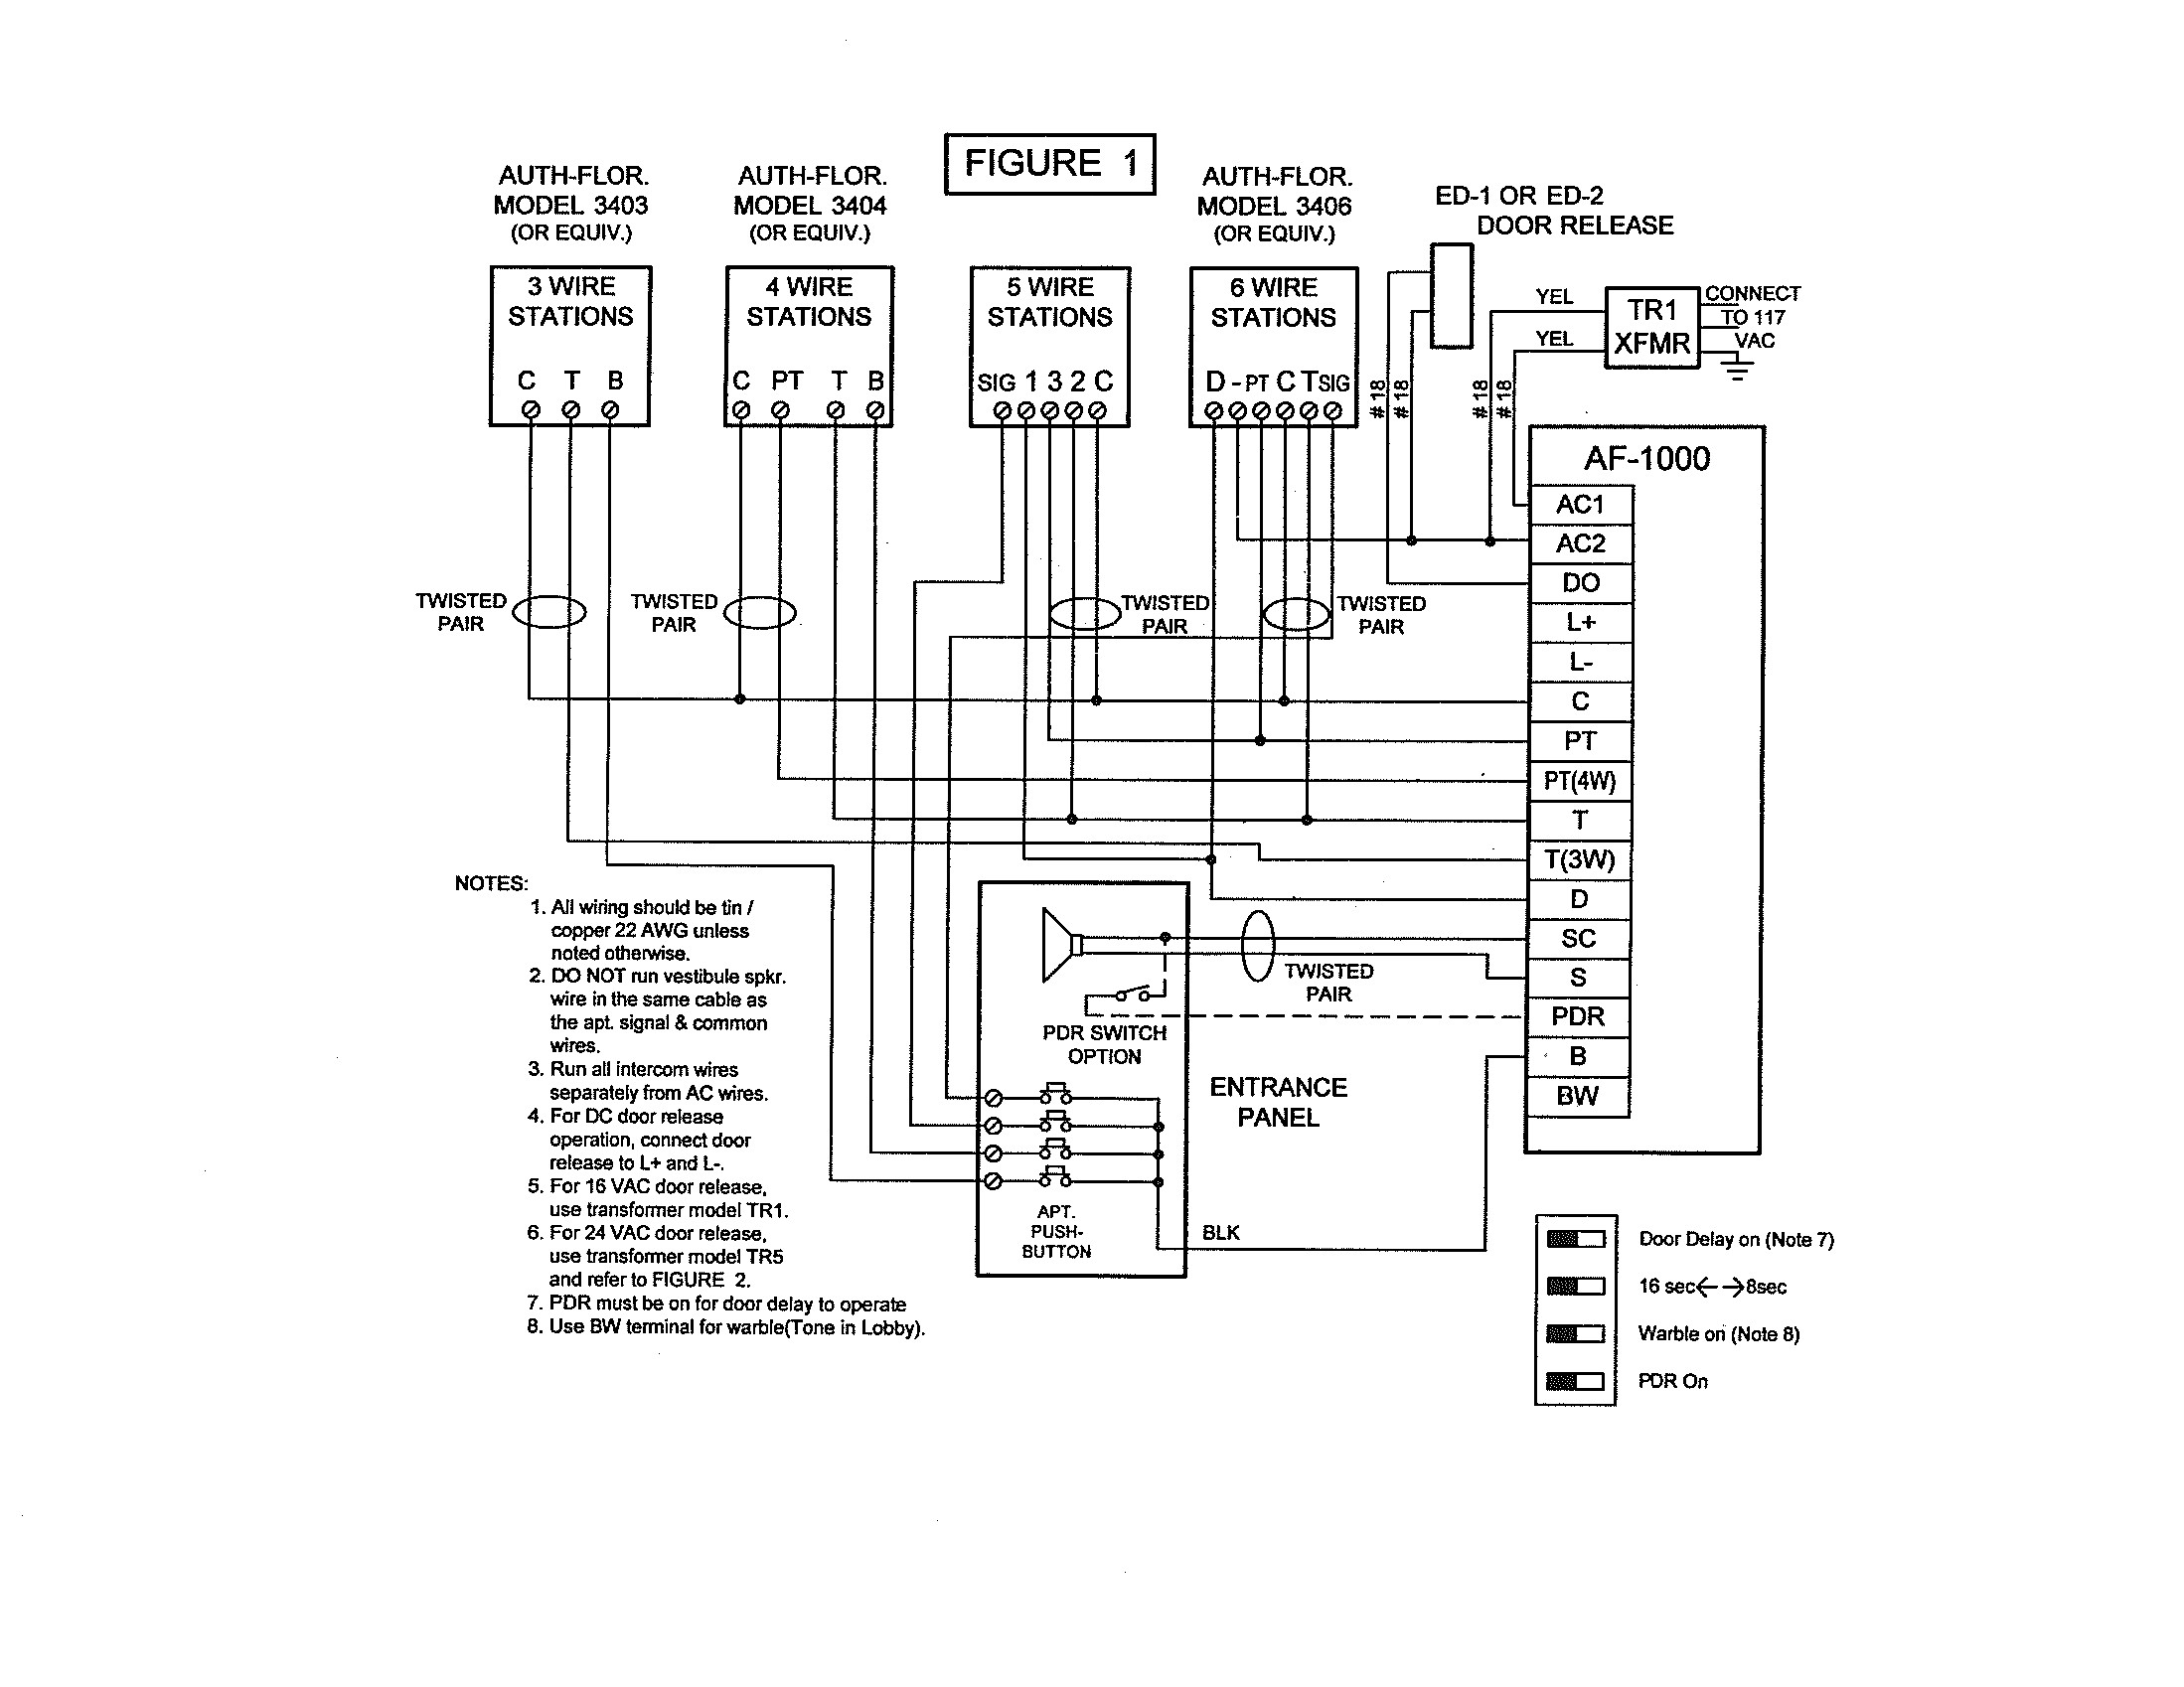 Intercom Wiring Diagram Schematic Data Home Audio Design Pacific Electronics 3404 4 Wire Plastic Station Theater